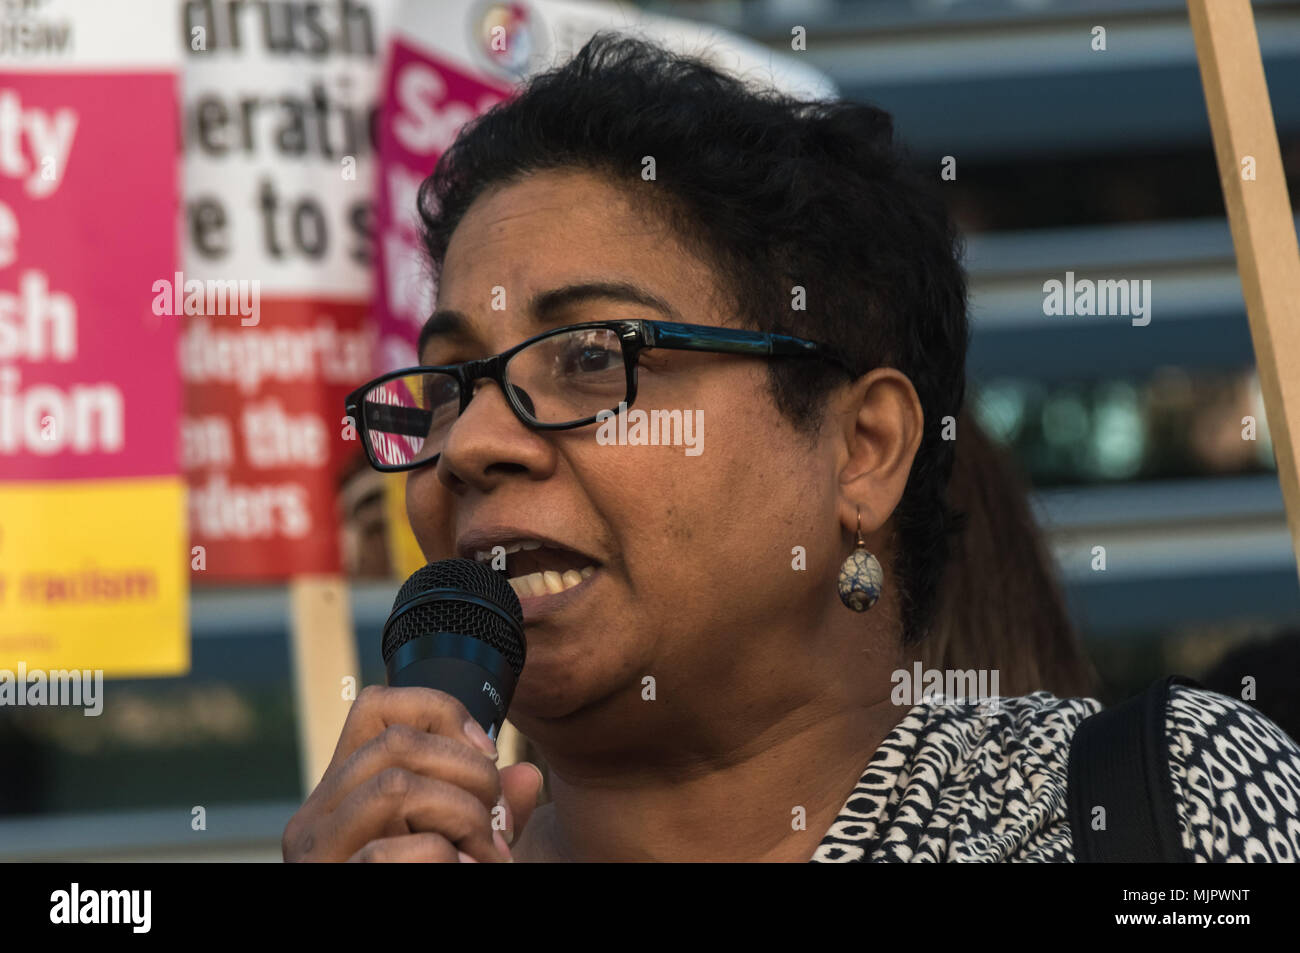 London, UK. 5th May 2018. An immigration lawyer reads a poem she has written about the Windrush experience of arriving in cold damp England and experiencing raciism at the protest outside the Home Office calling for Theresa May's racist 2014 Immigration Act to be repealed and an immediate end to the deportation and detention of Commonwealth citizens, with those already deported to be bought back to the UK. They called for protection to the guaranteed for all Commonwealth citizens and for those affected to be compensated for deportation, threats of deportation, detention, loss of housing, jobs,Stock Photo